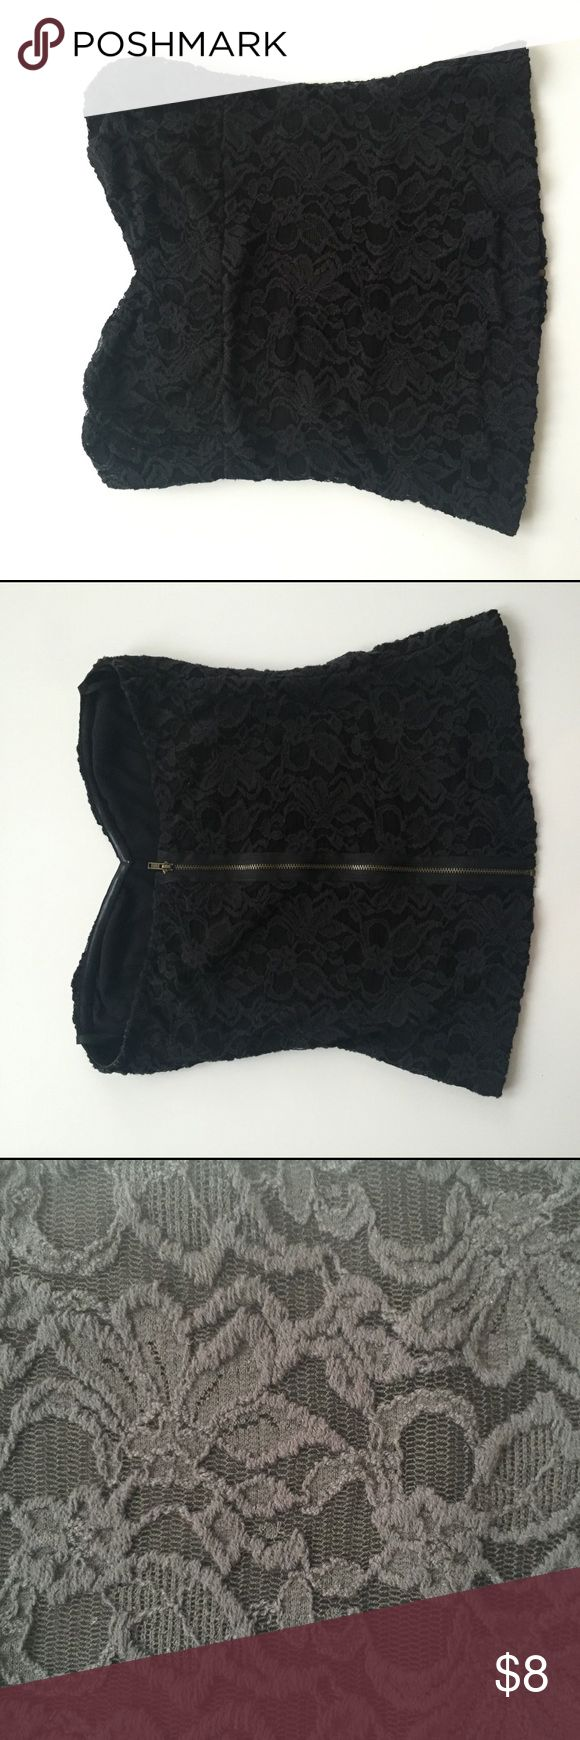 Pins and Needle tube top All black tube top with lace overlay and sweet heart neckline. Size large. Purchased from Urban Outfitters. Brass colored zipper in the back. Shorter cut, falling above hips. Lightly worn. Pins & Needles Tops Tank Tops